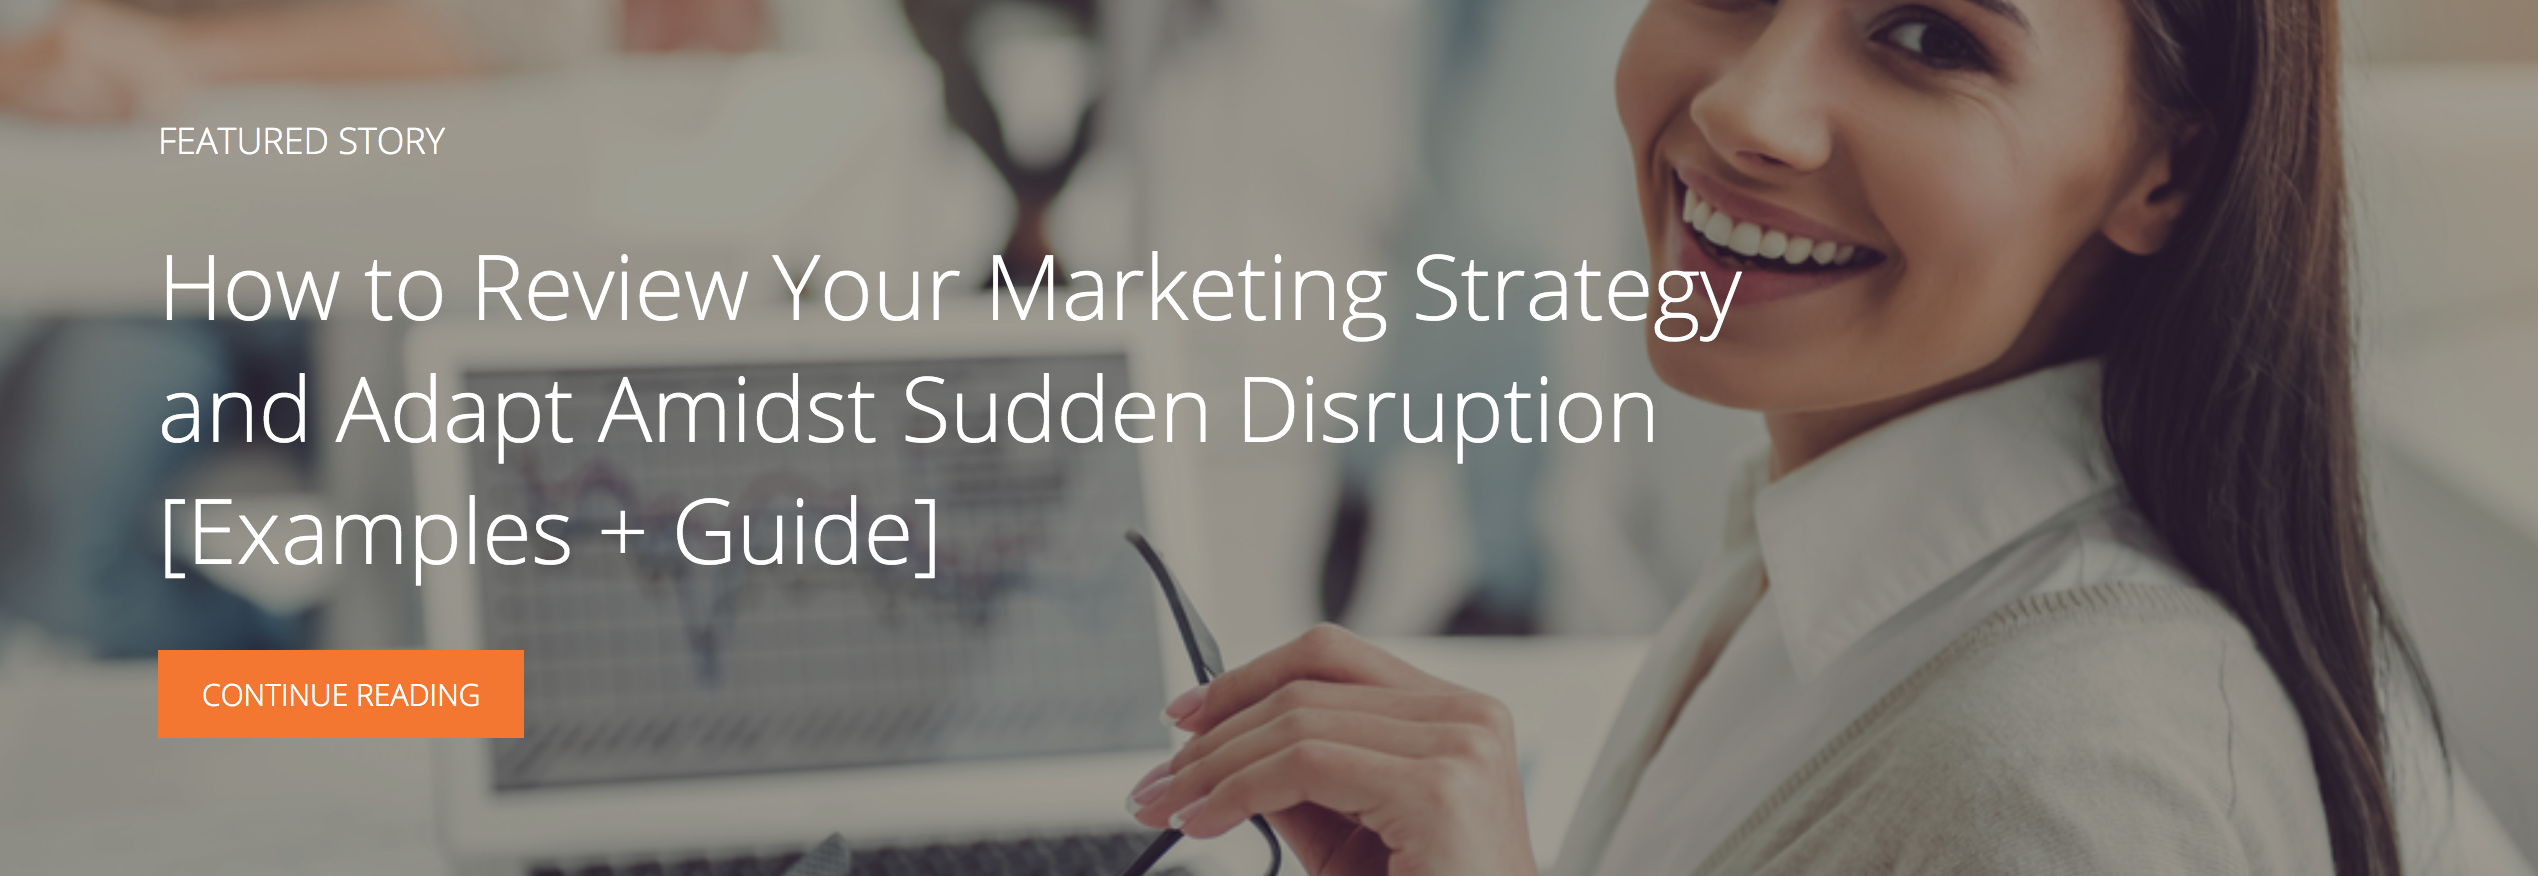 how to review your marketing strategy and adapt amidst sudden disruption